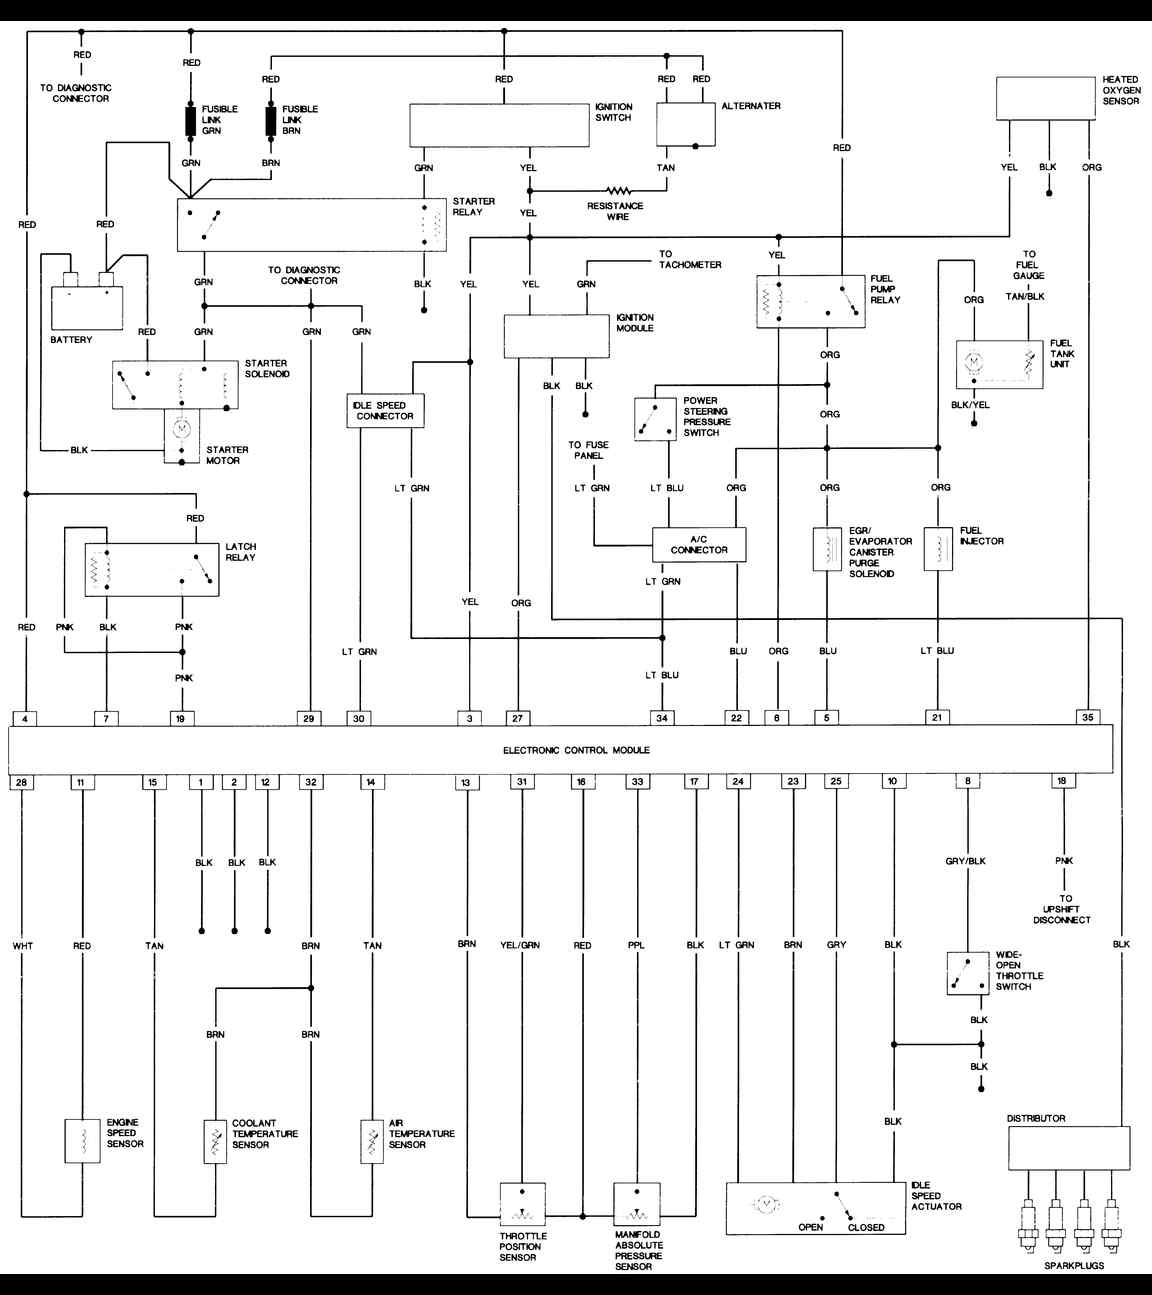 1987 jeep wrangler 2.5l engine - freeautomechanic 1987 jeep wrangler starter wiring diagram